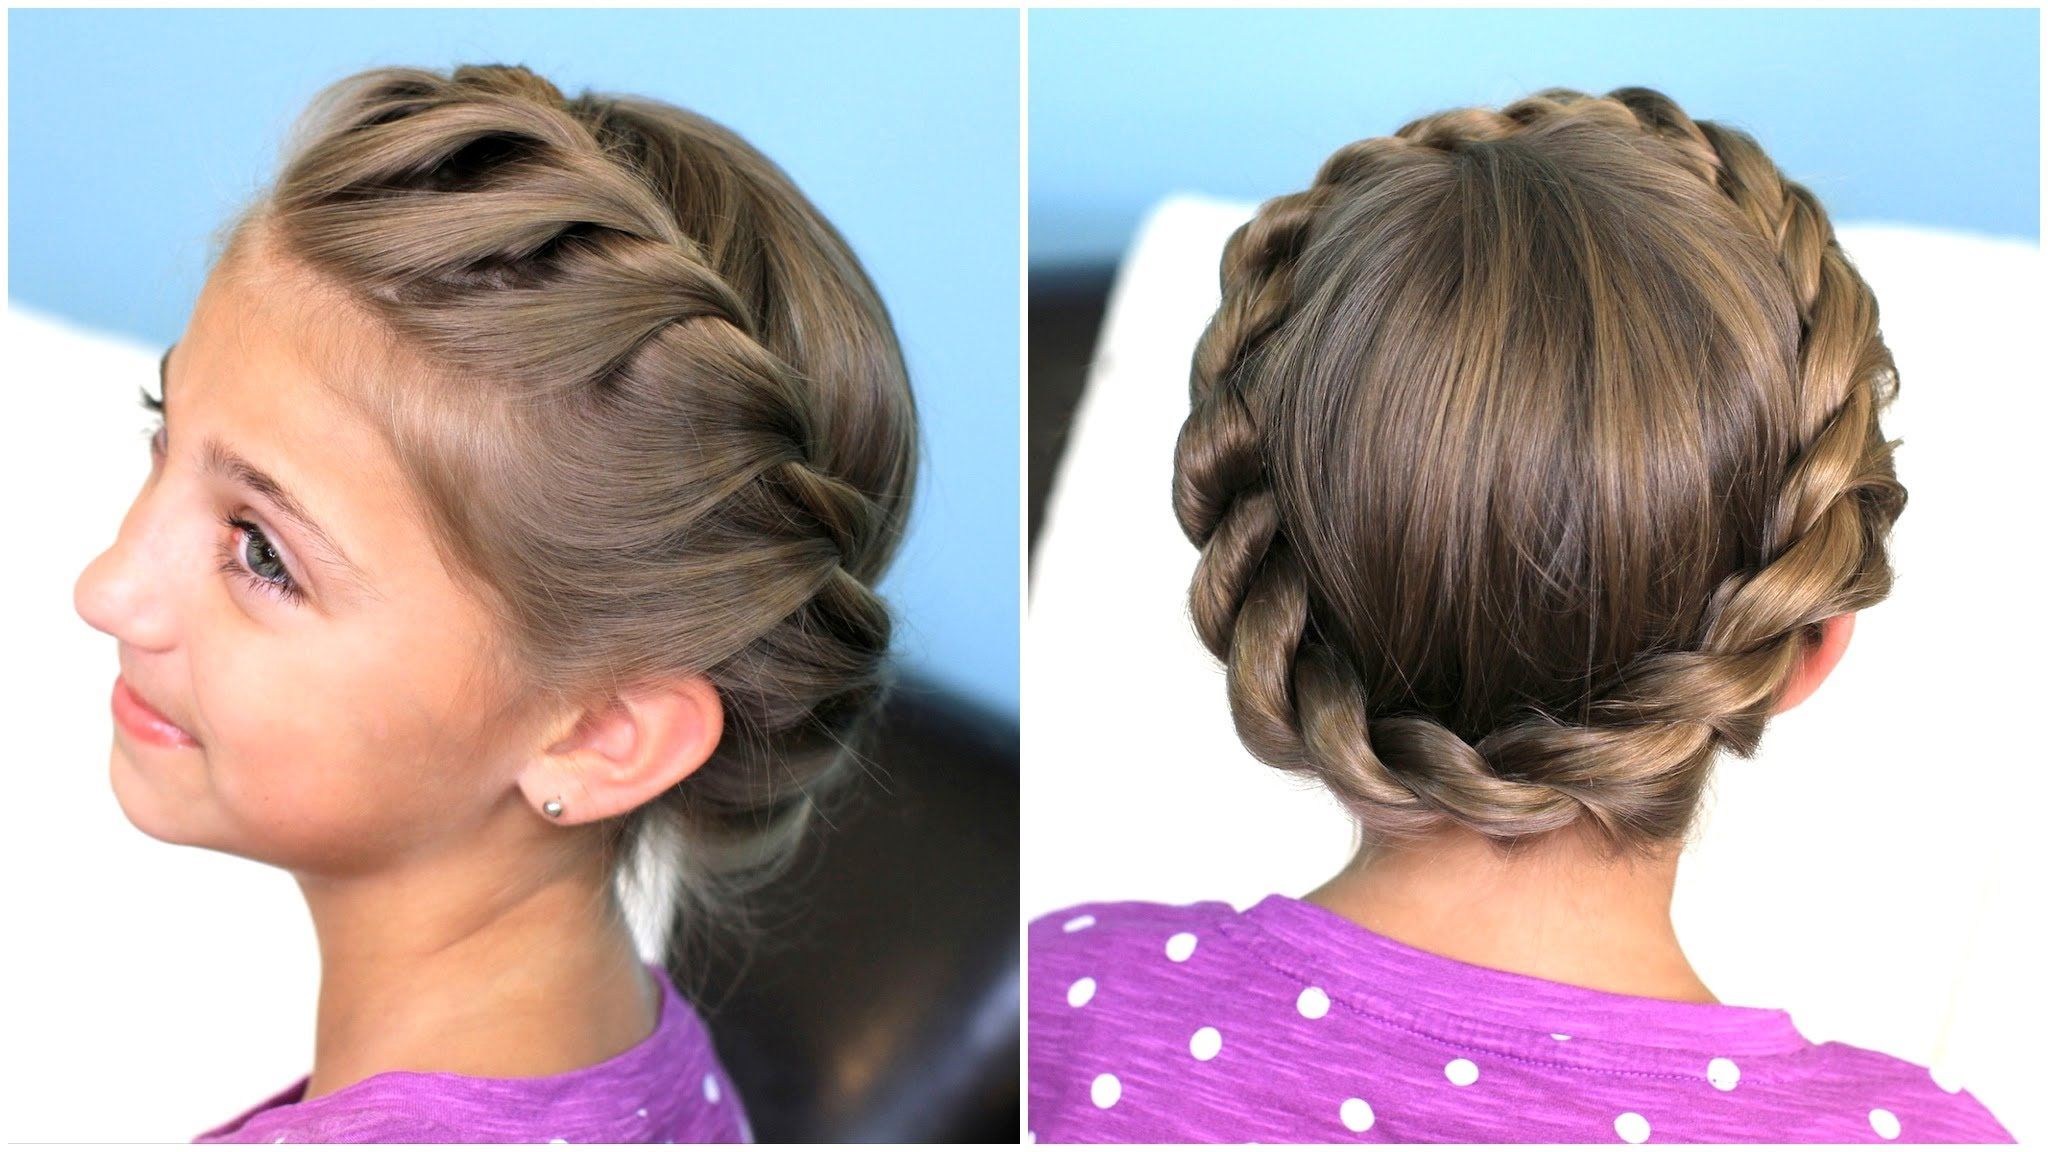 Twisted Hairstyles Glamorous How To Create A Crown Twist Braid  Updo Hairstyles  Hair 2